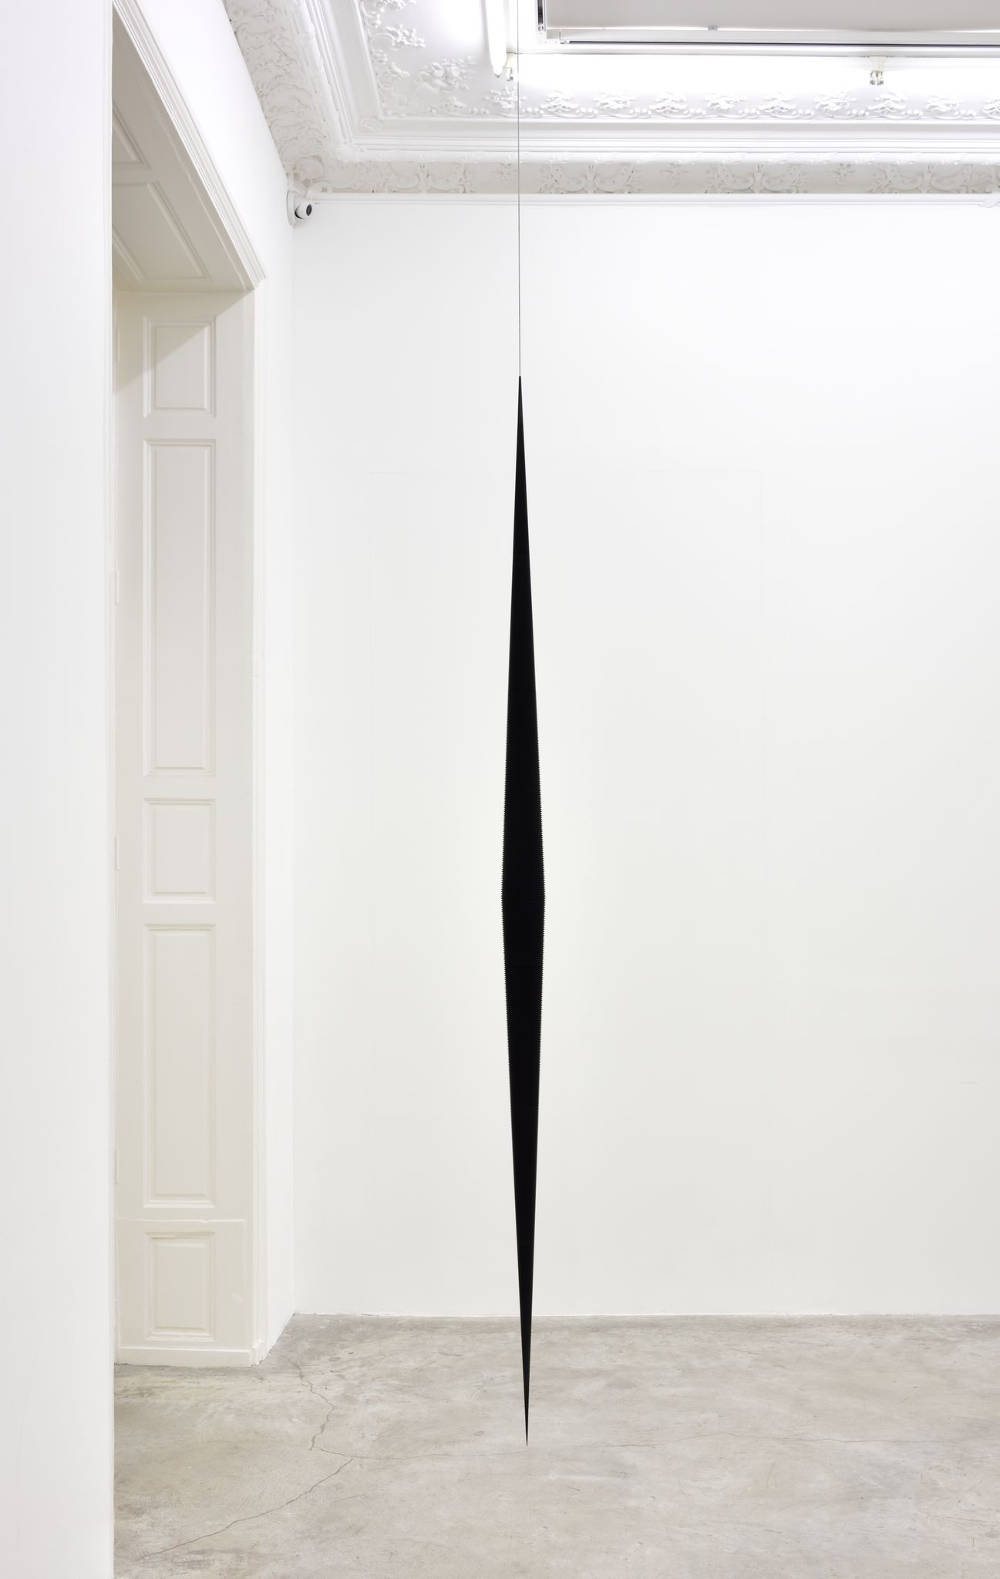 Artur Lescher, Fuso#2, 2013. Black anodized aluminium and steel cable 300 x 12 cm 118 1/8 x 4 3/4 in. AP 1/2 + 5 Ed © Artur Lescher - Photo: Rebecca Fanuele. Courtesy of the Artist and Almine Rech